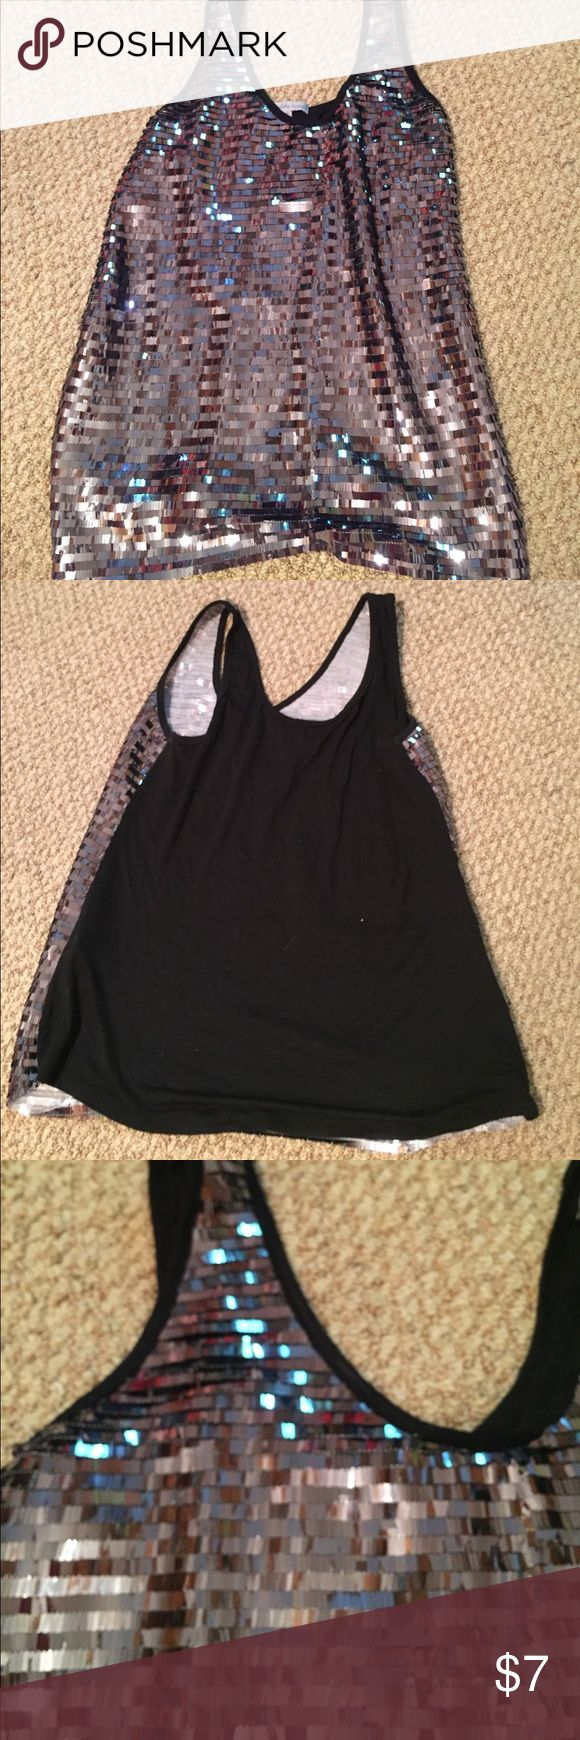 Sparkly tank top This tank top is perfect for a fun night out! It has a sequenced front with a solid black back. One inch straps. Charlotte Russe Tops Tank Tops